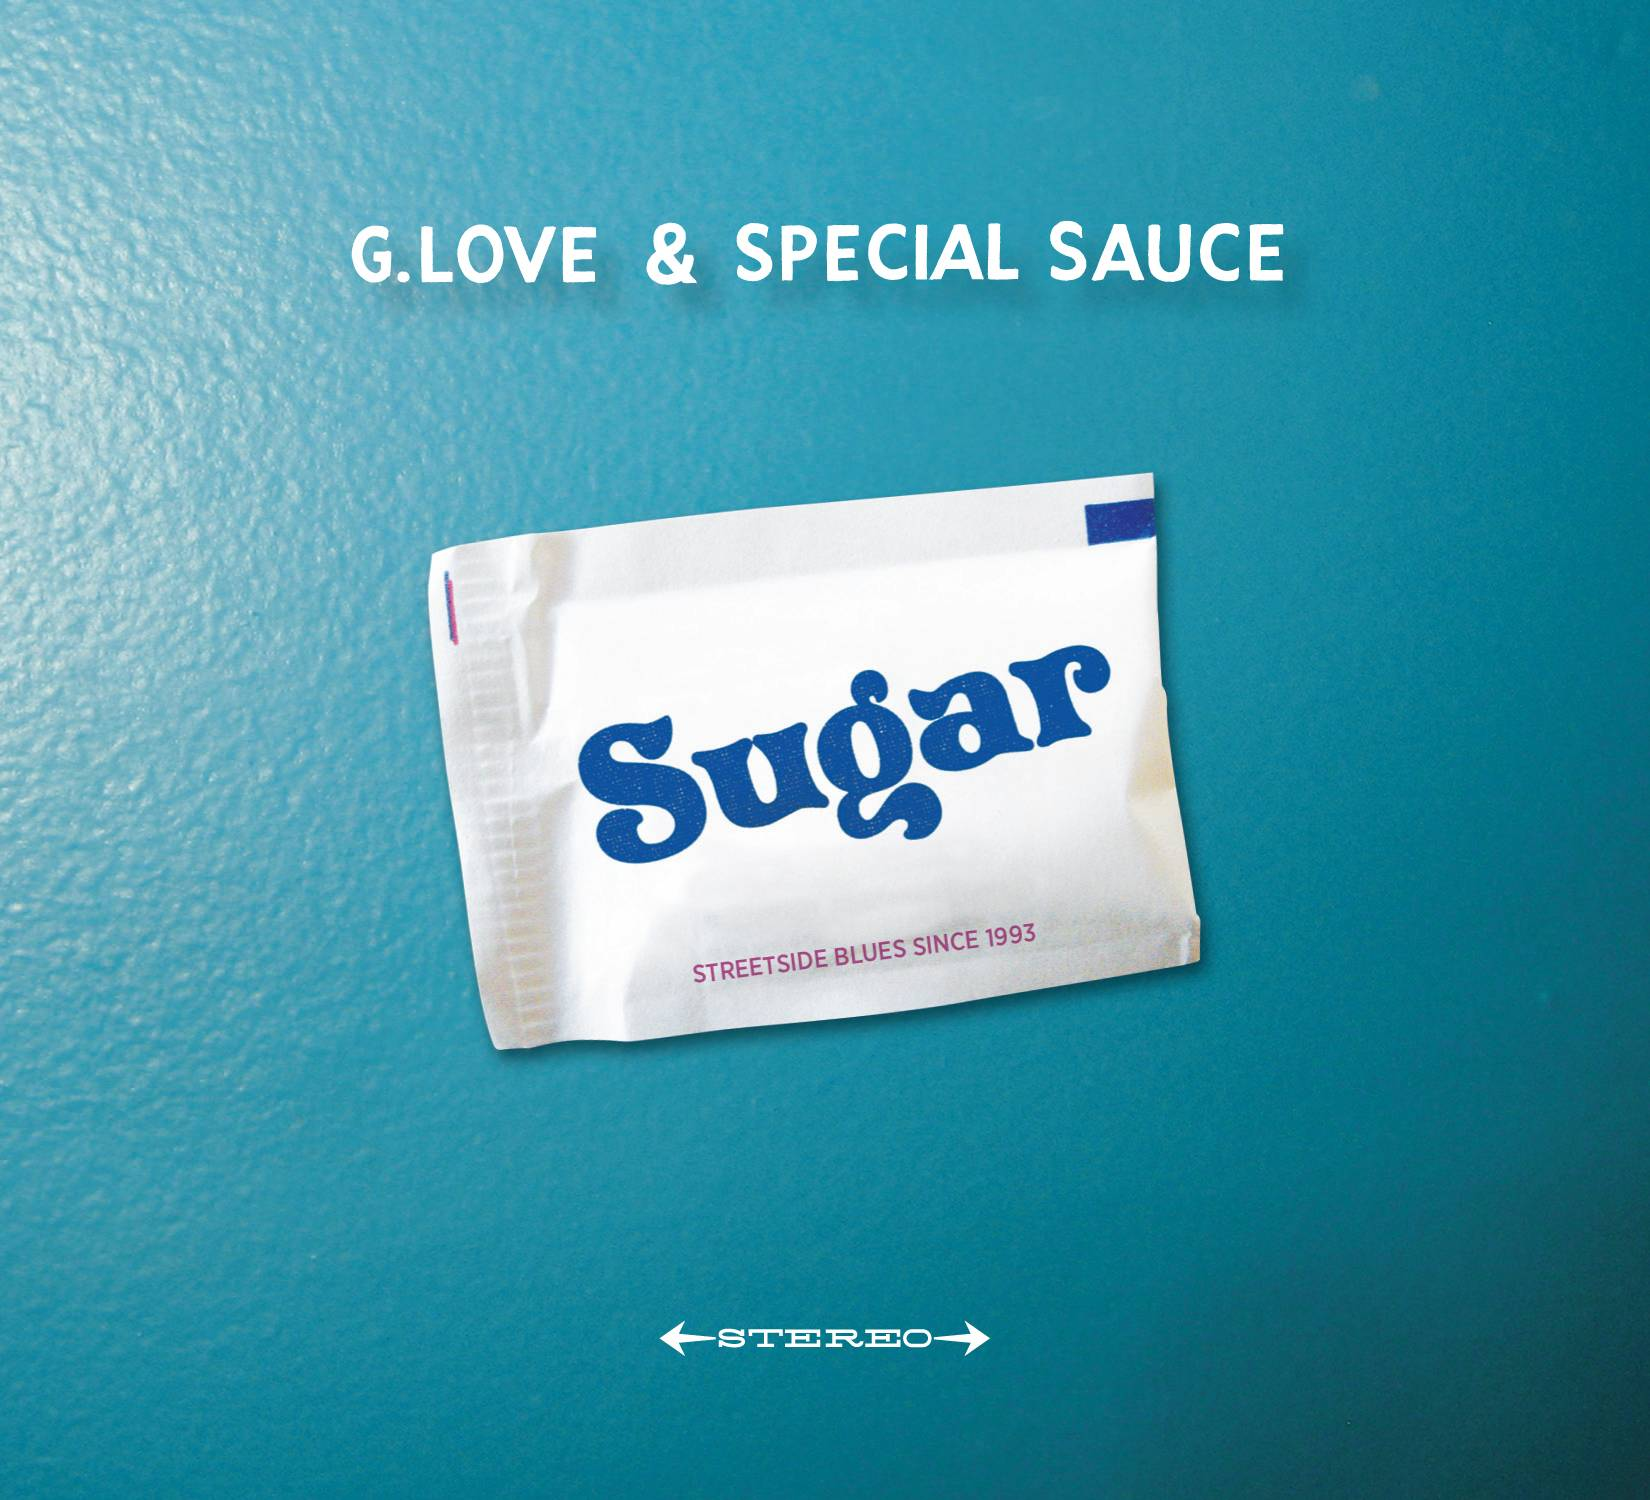 """Sugar"" is the latest release by G. Love & Special Sauce."